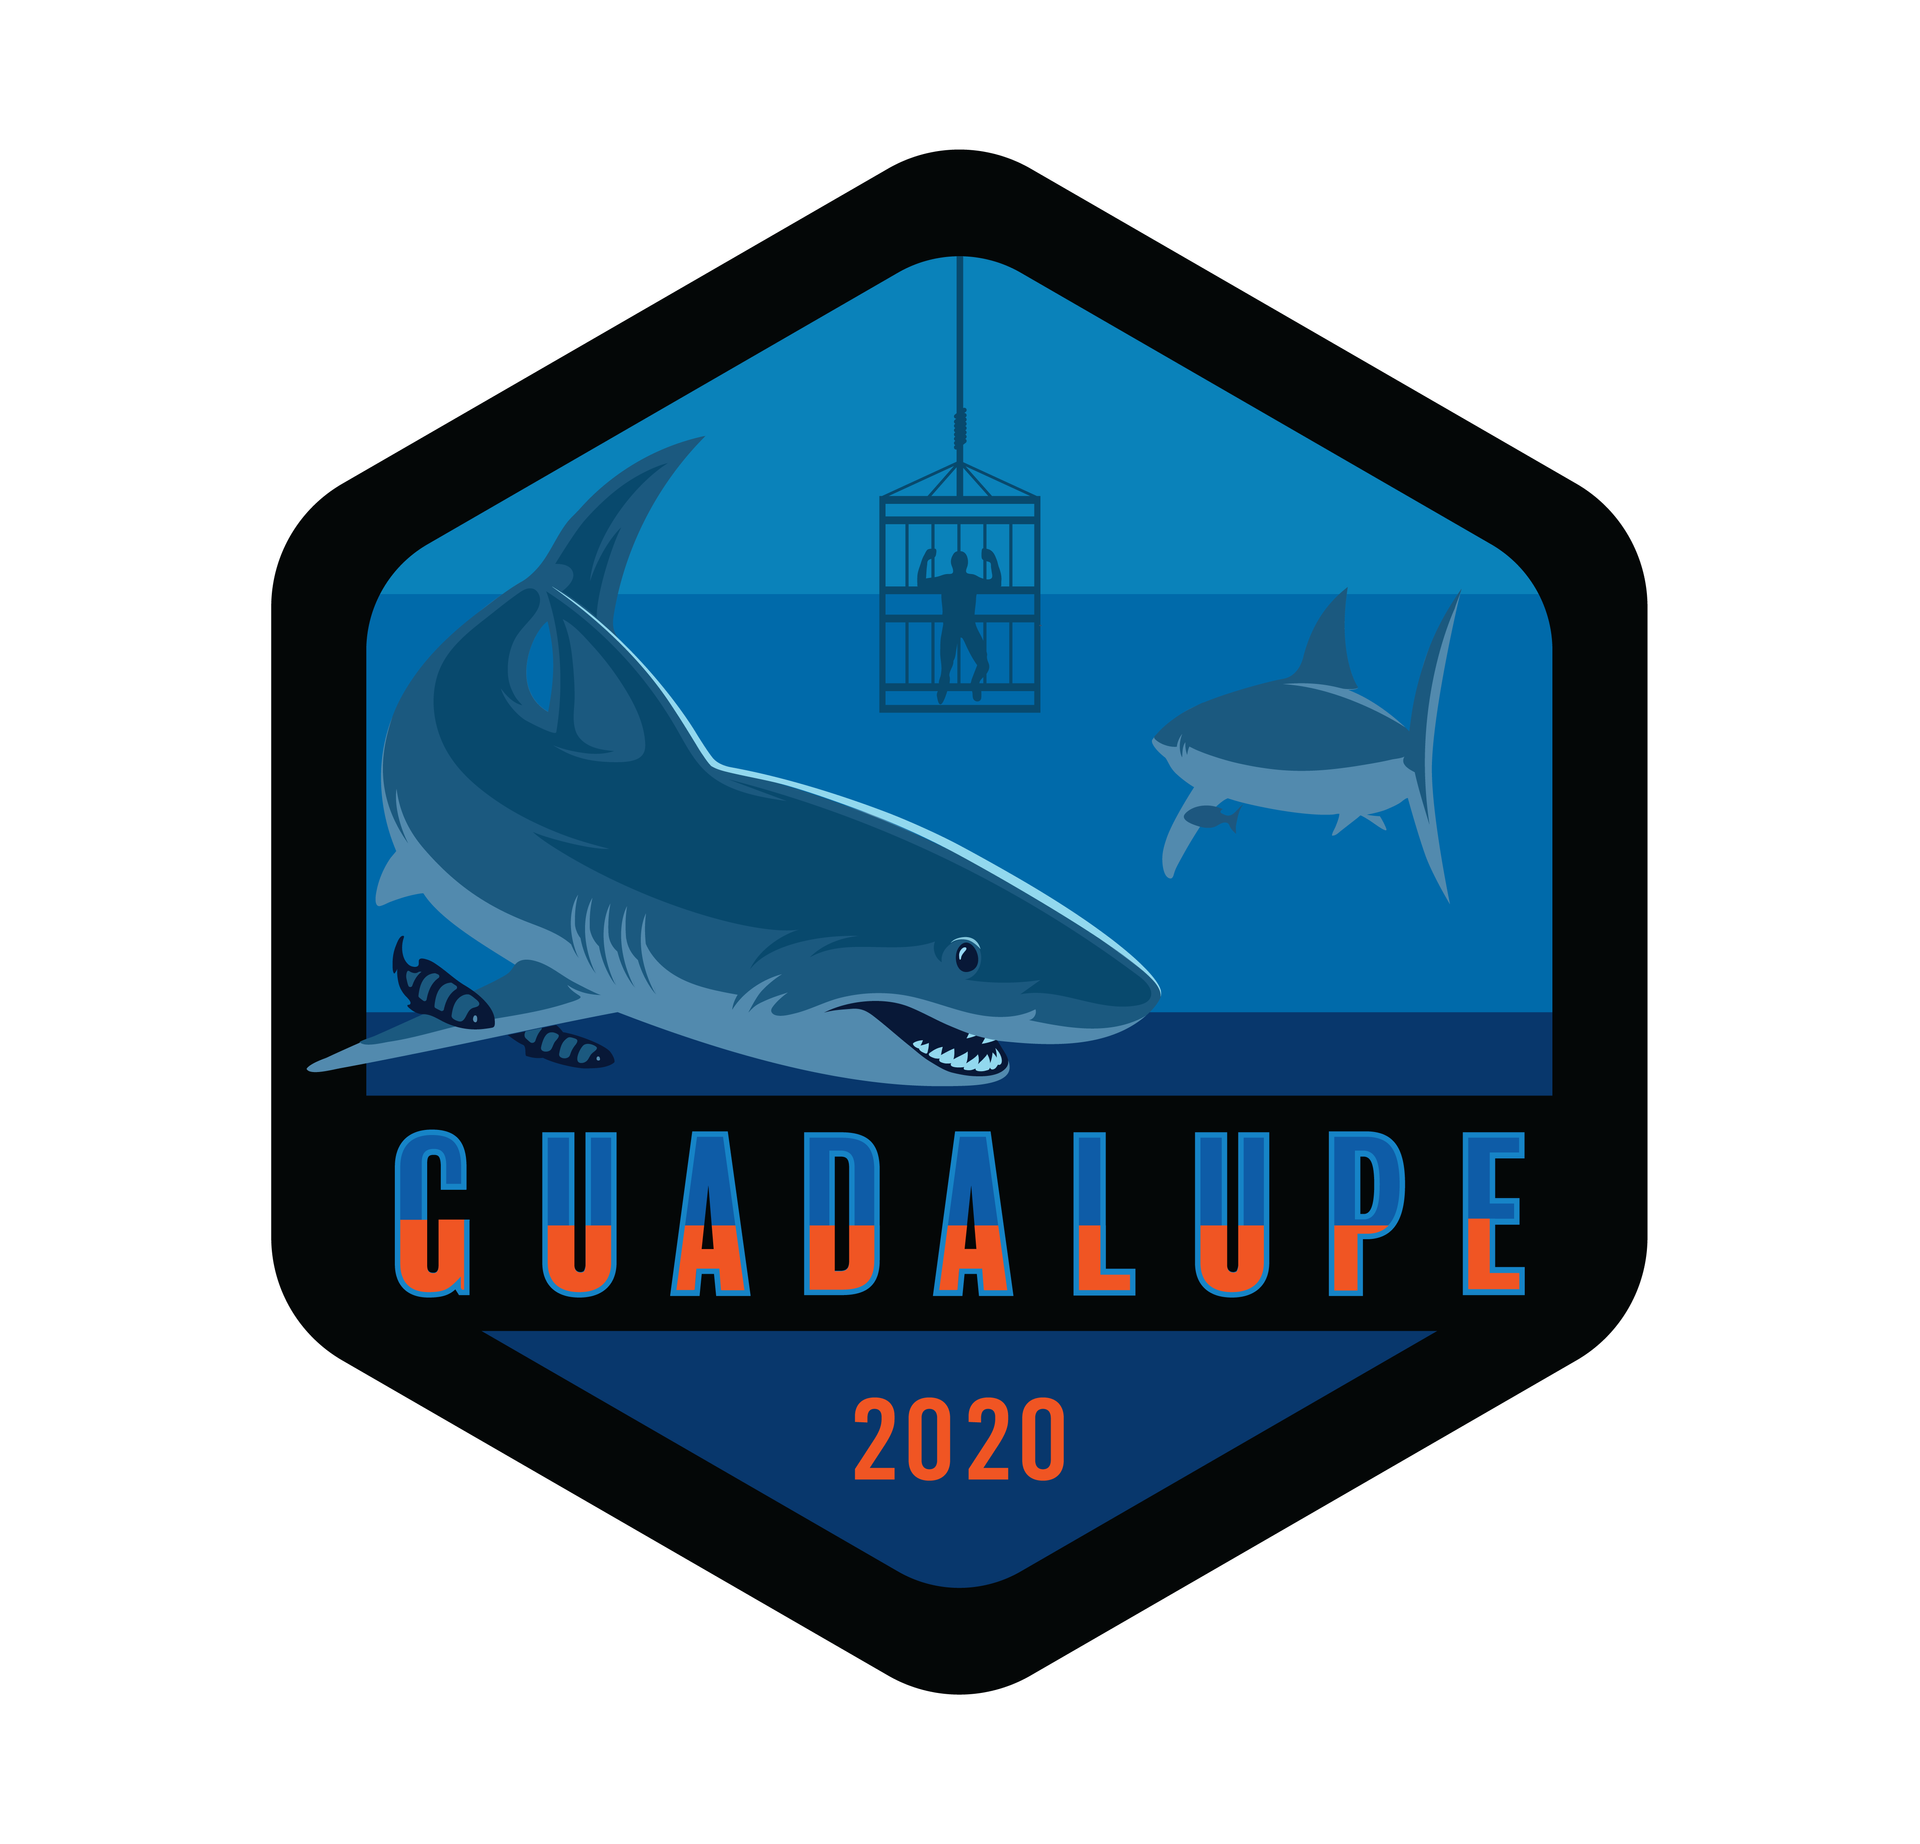 Guadalupe-01.png